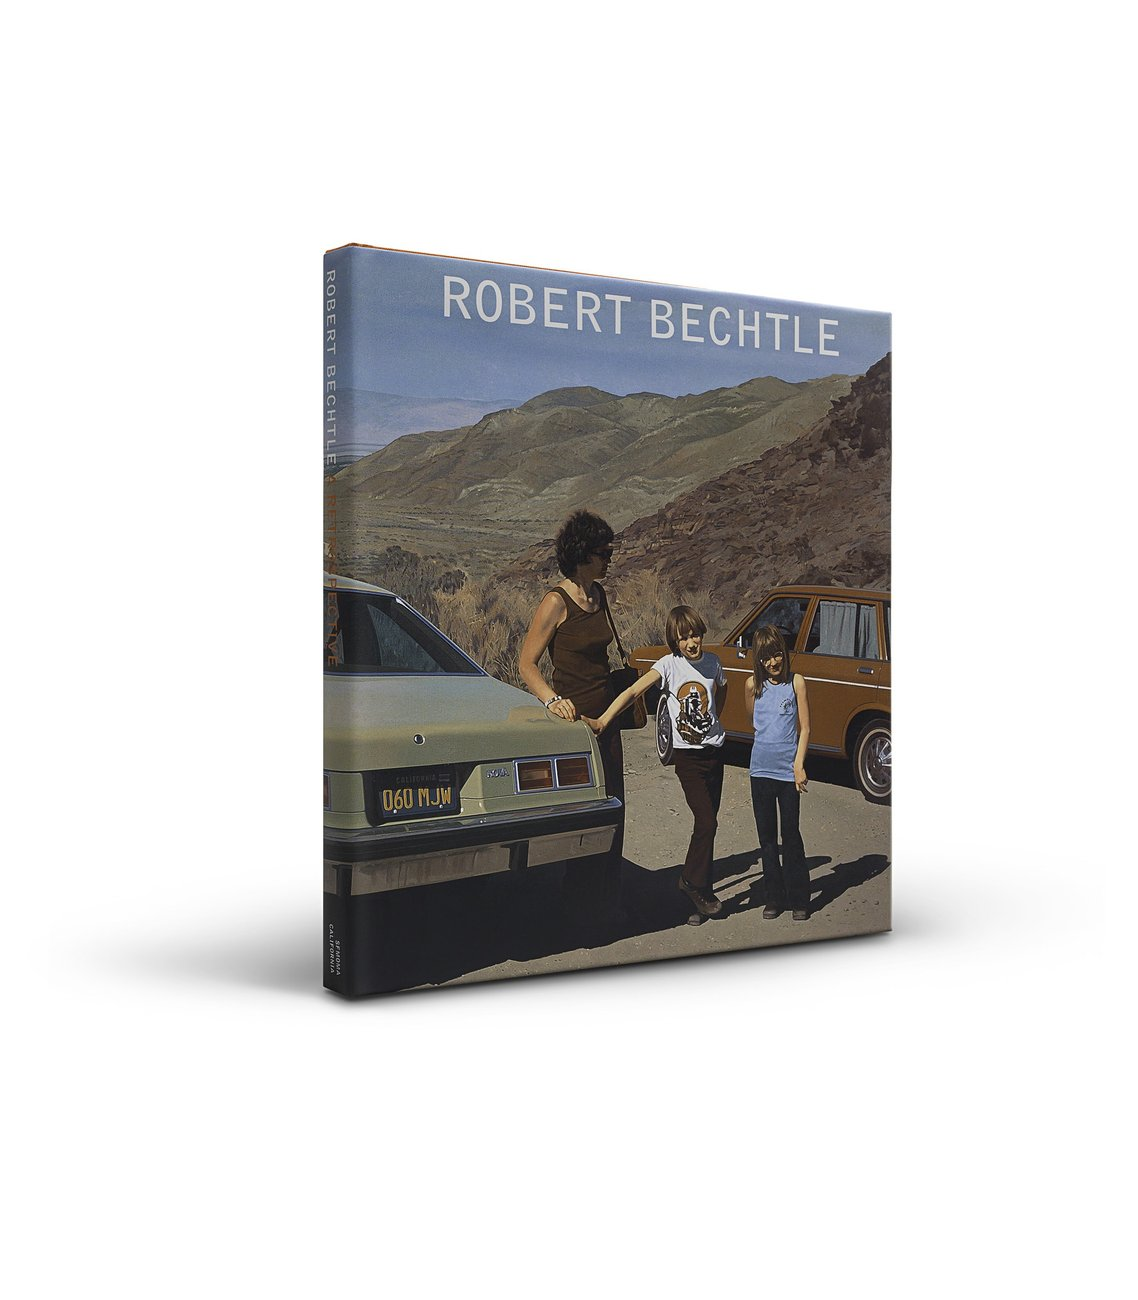 Robert Bechtle publication cover